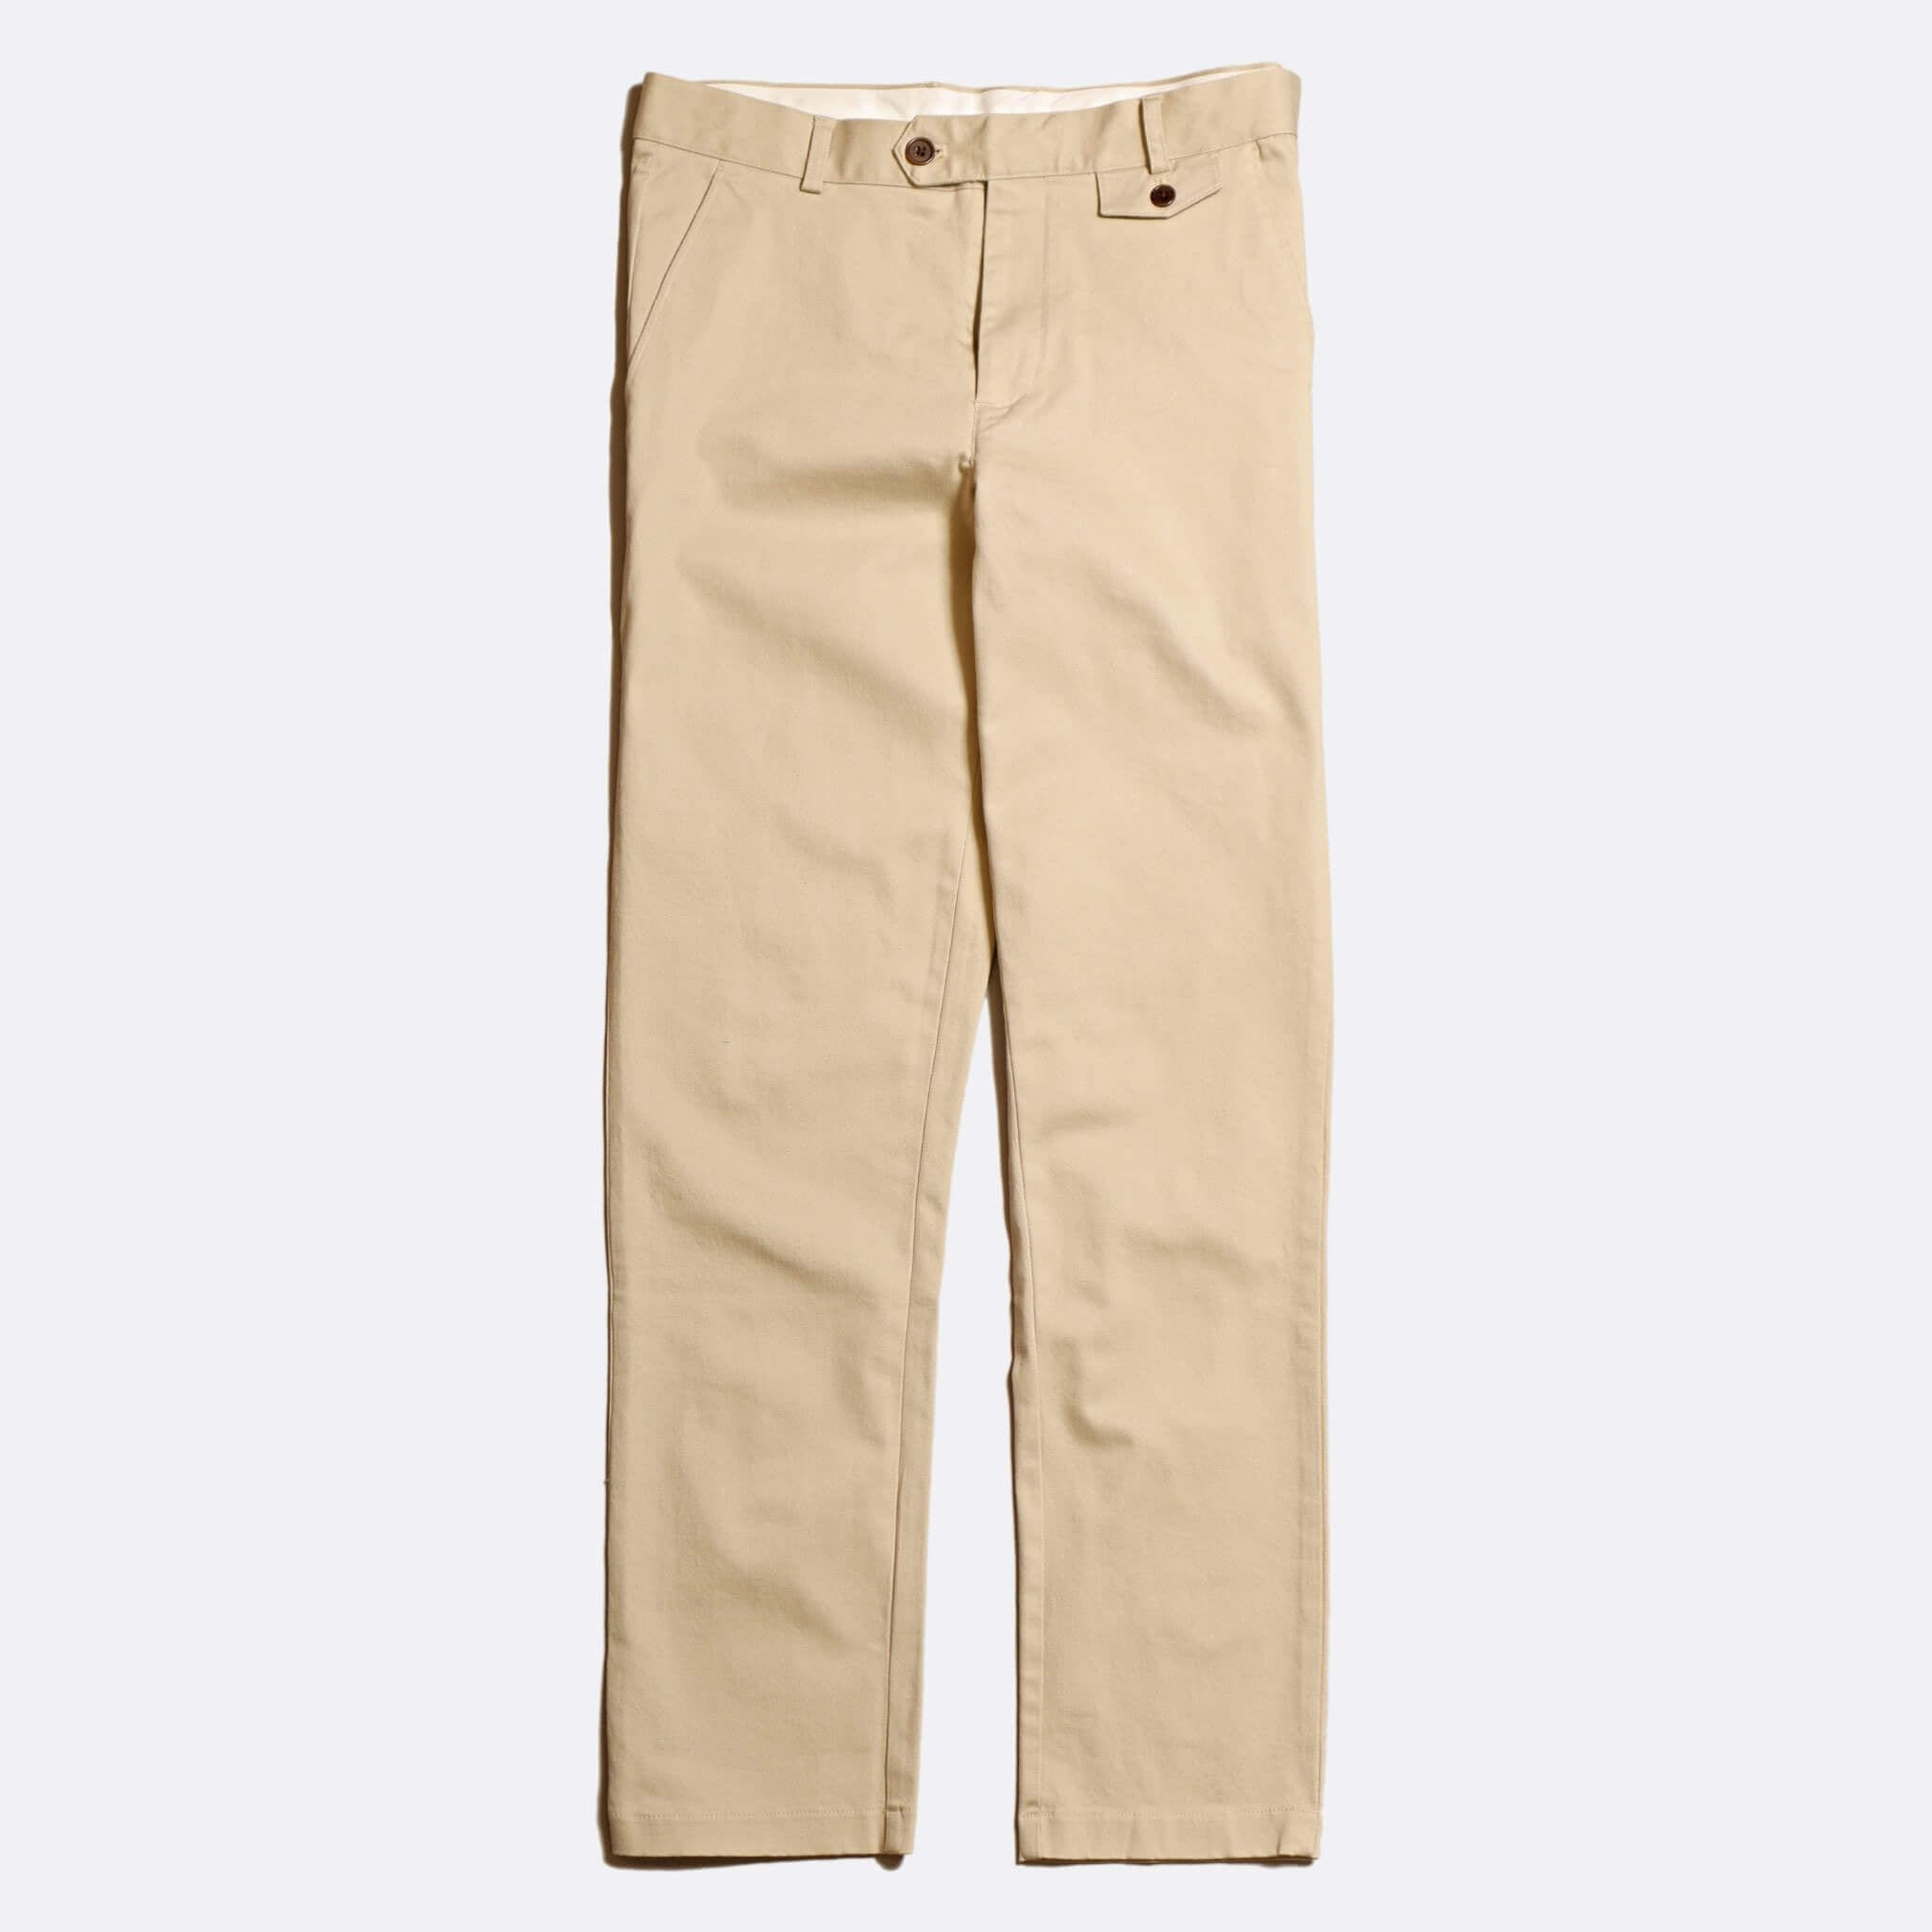 Far Afield Tricker Trousers a Pumice Stone BCI Cotton Twill Classic Tailored Smart Casual Trousers